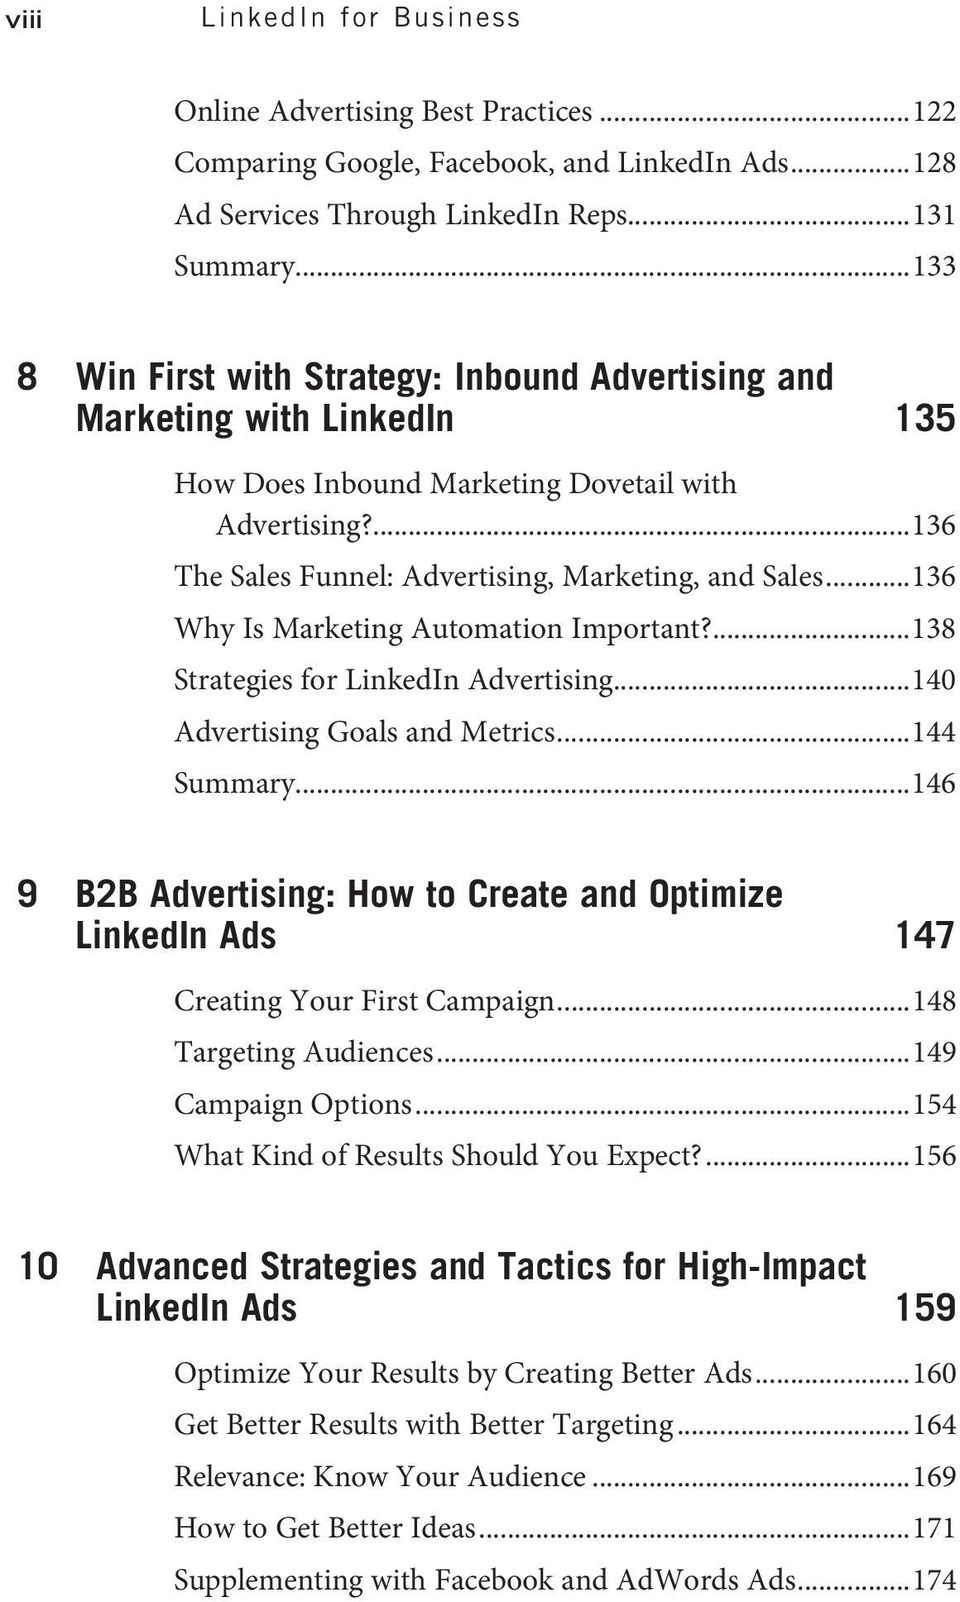 ..136 Why Is Marketing Automation Important?...138 Strategies for LinkedIn Advertising...140 Advertising Goals and Metrics...144 Summary.